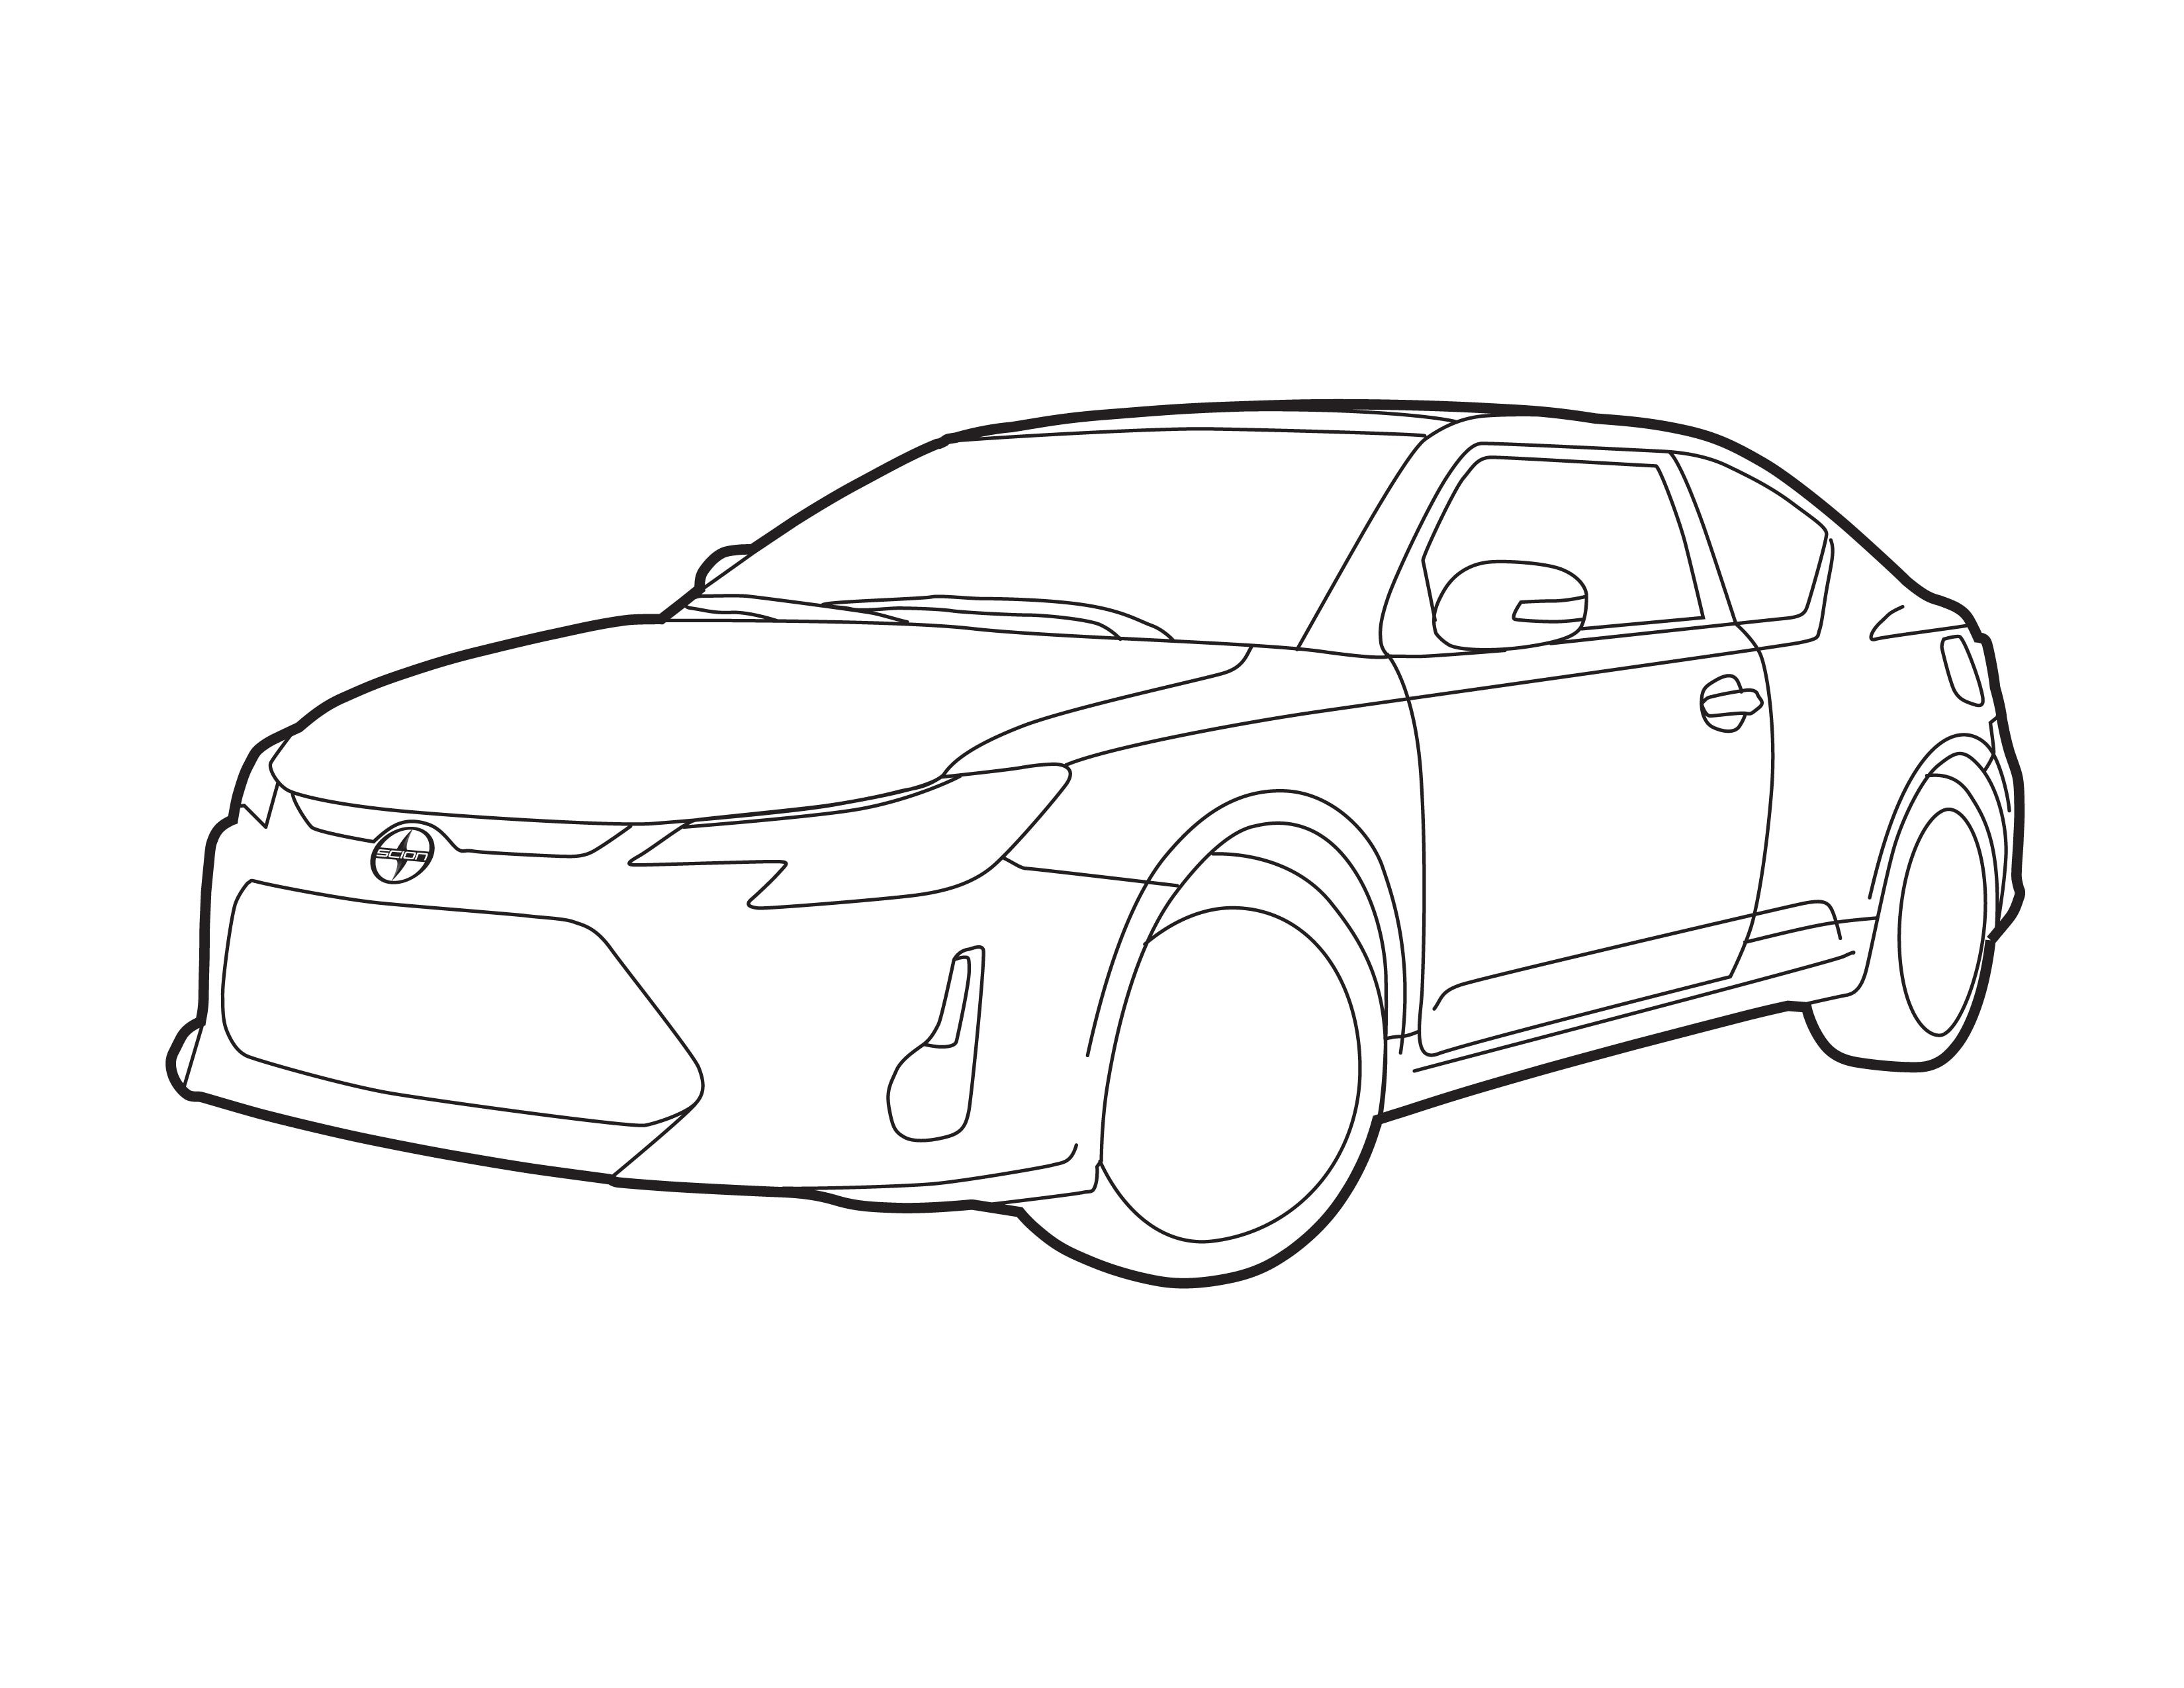 Can A Toyota Scion Be A Hot Rod Scion S Tc Tuner